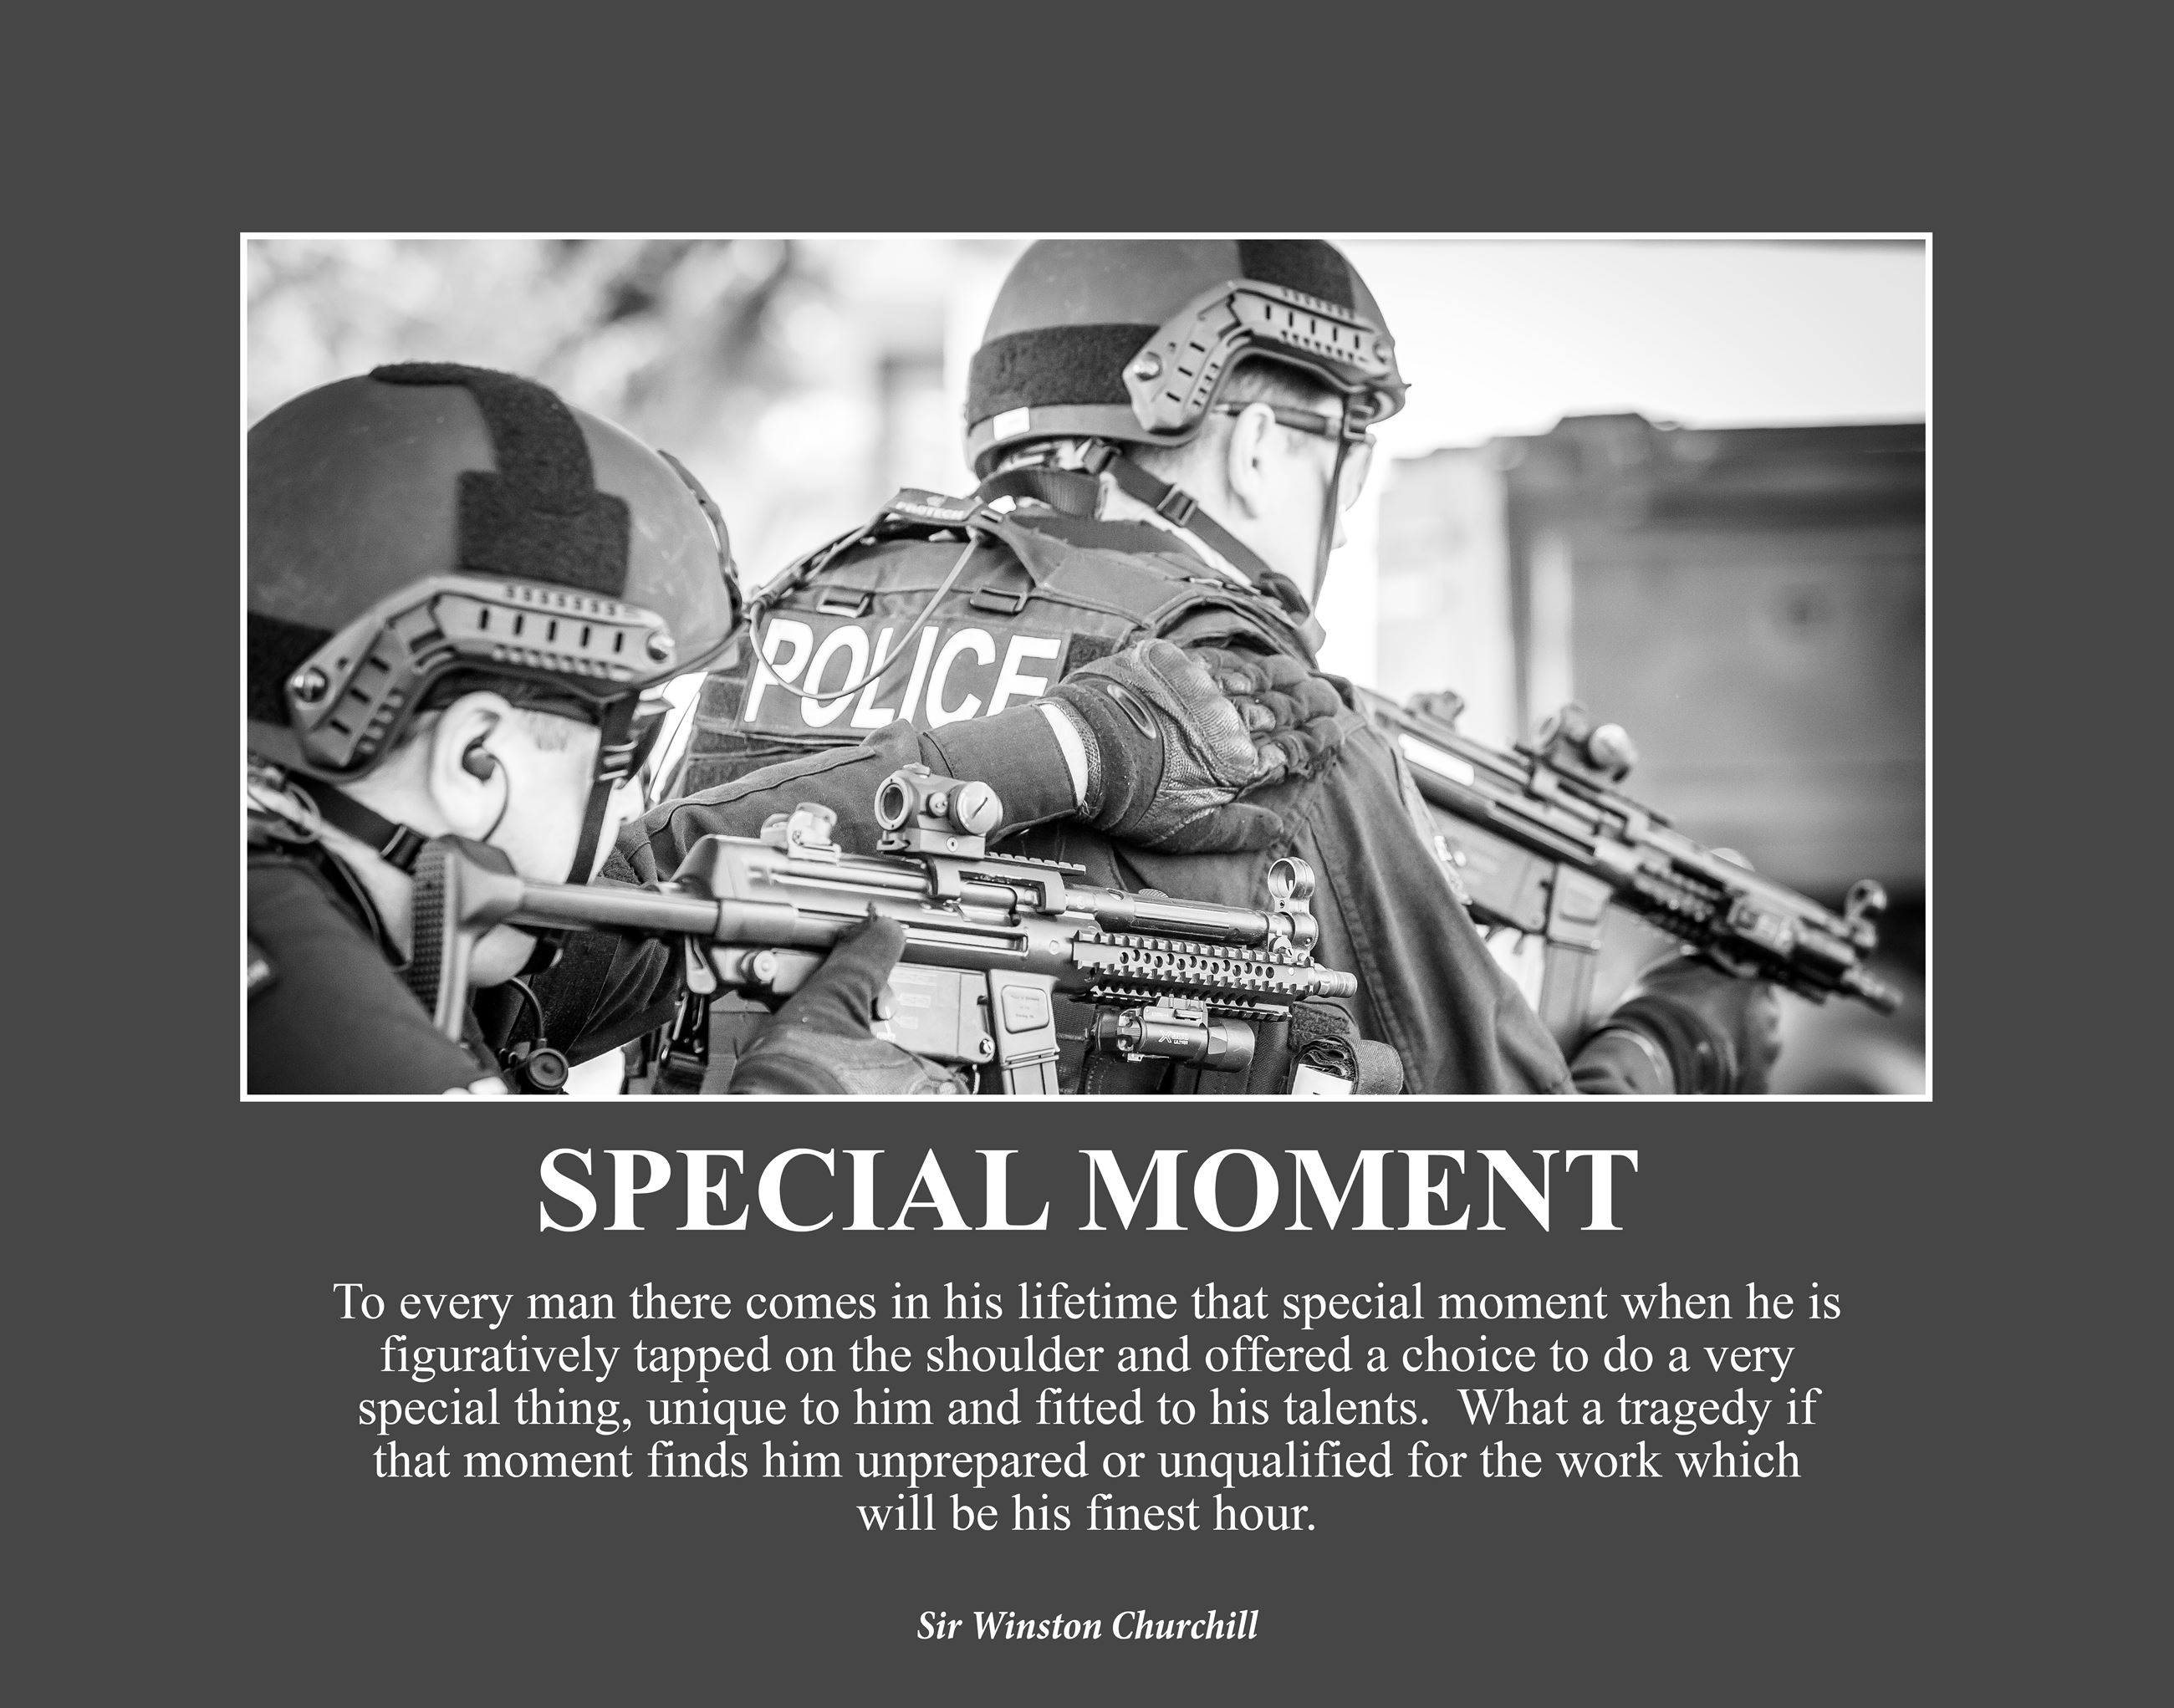 Special Moment